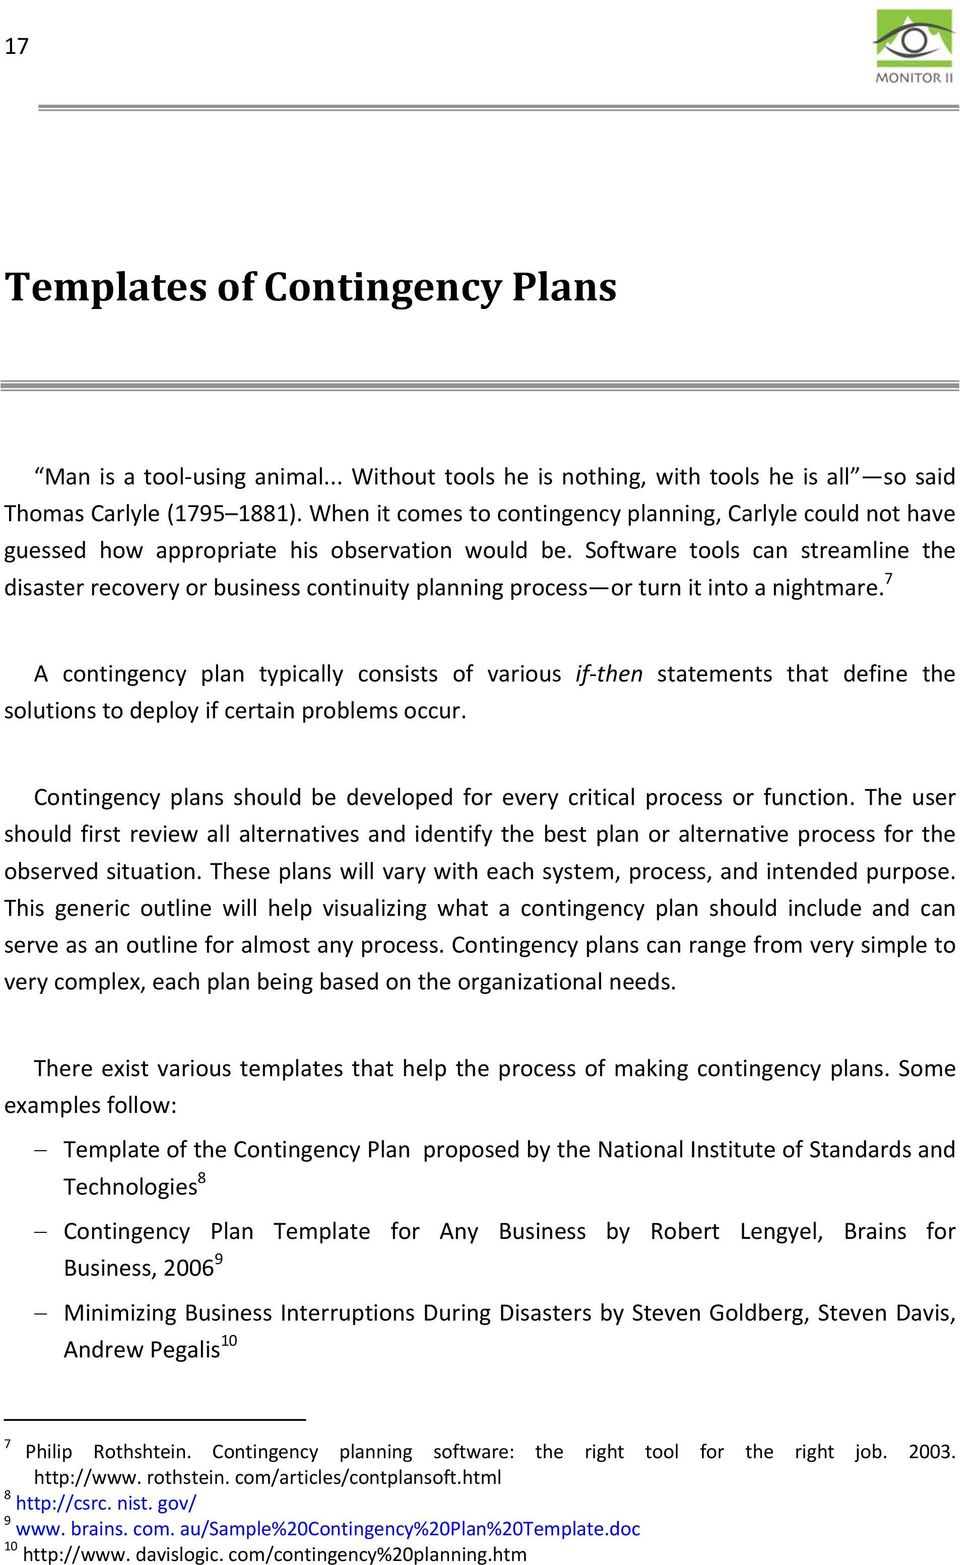 CONTINGENCY PLANNING: PROCESS, TEMPLATES, CURRENT STATE IN